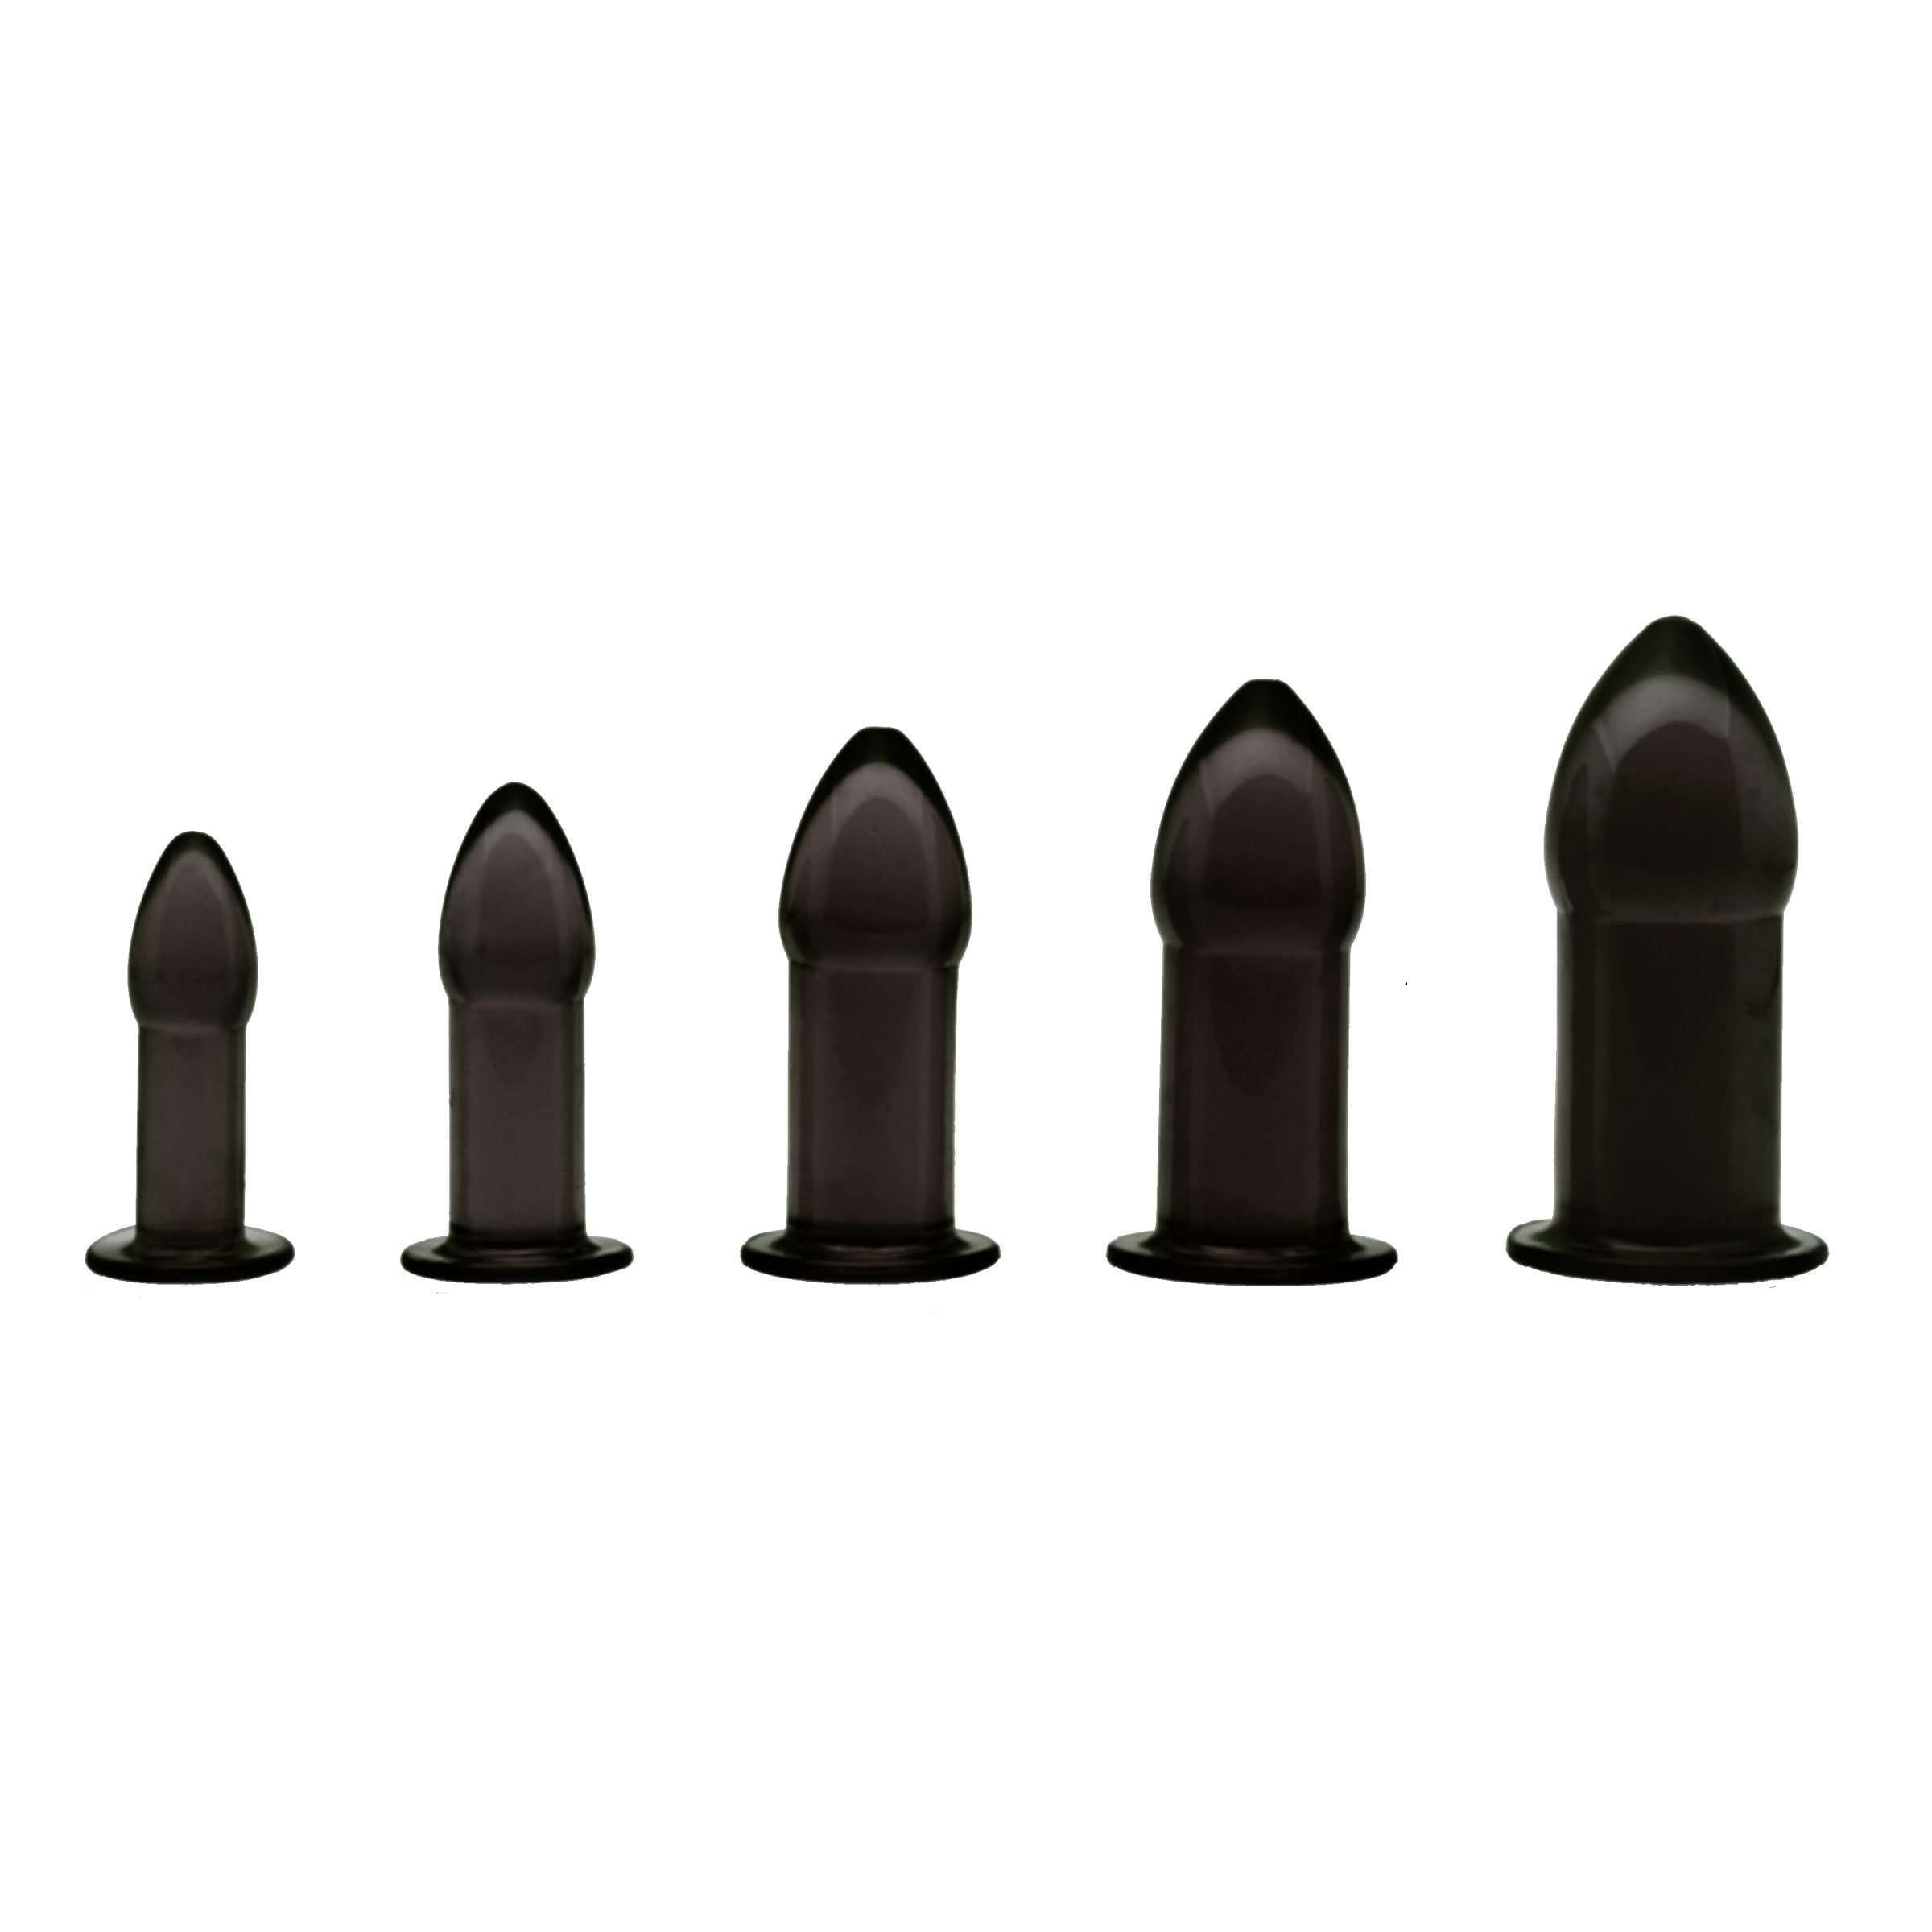 5 Piece Anal Trainer Set - Black